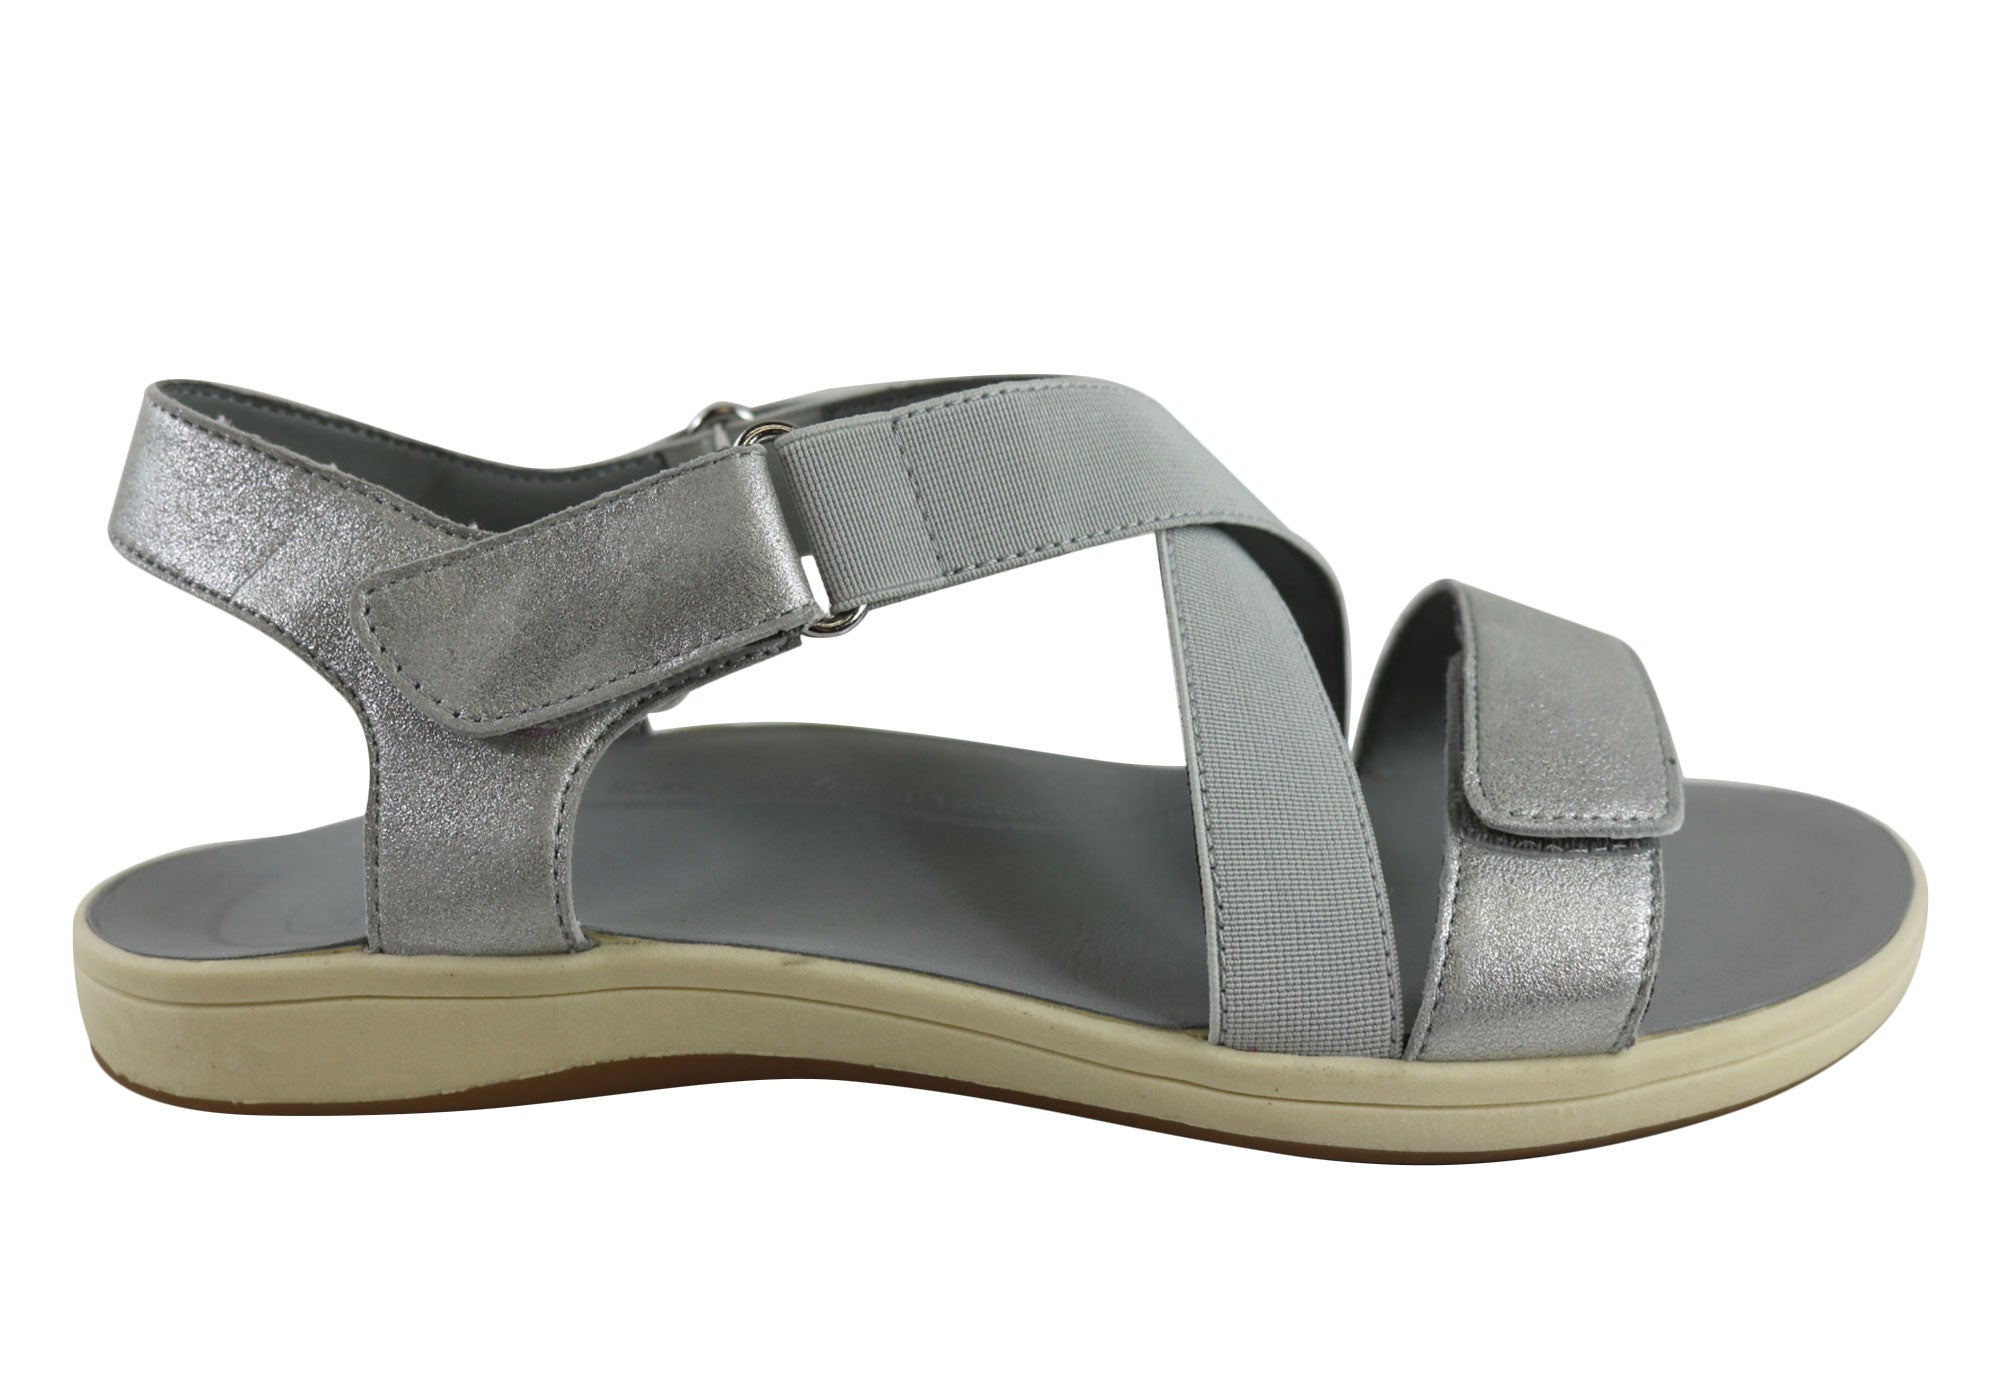 b110ed2694e5 Scholl Orthaheel Kirsten Womens Supportive Orthotic Comfort Sandals ...